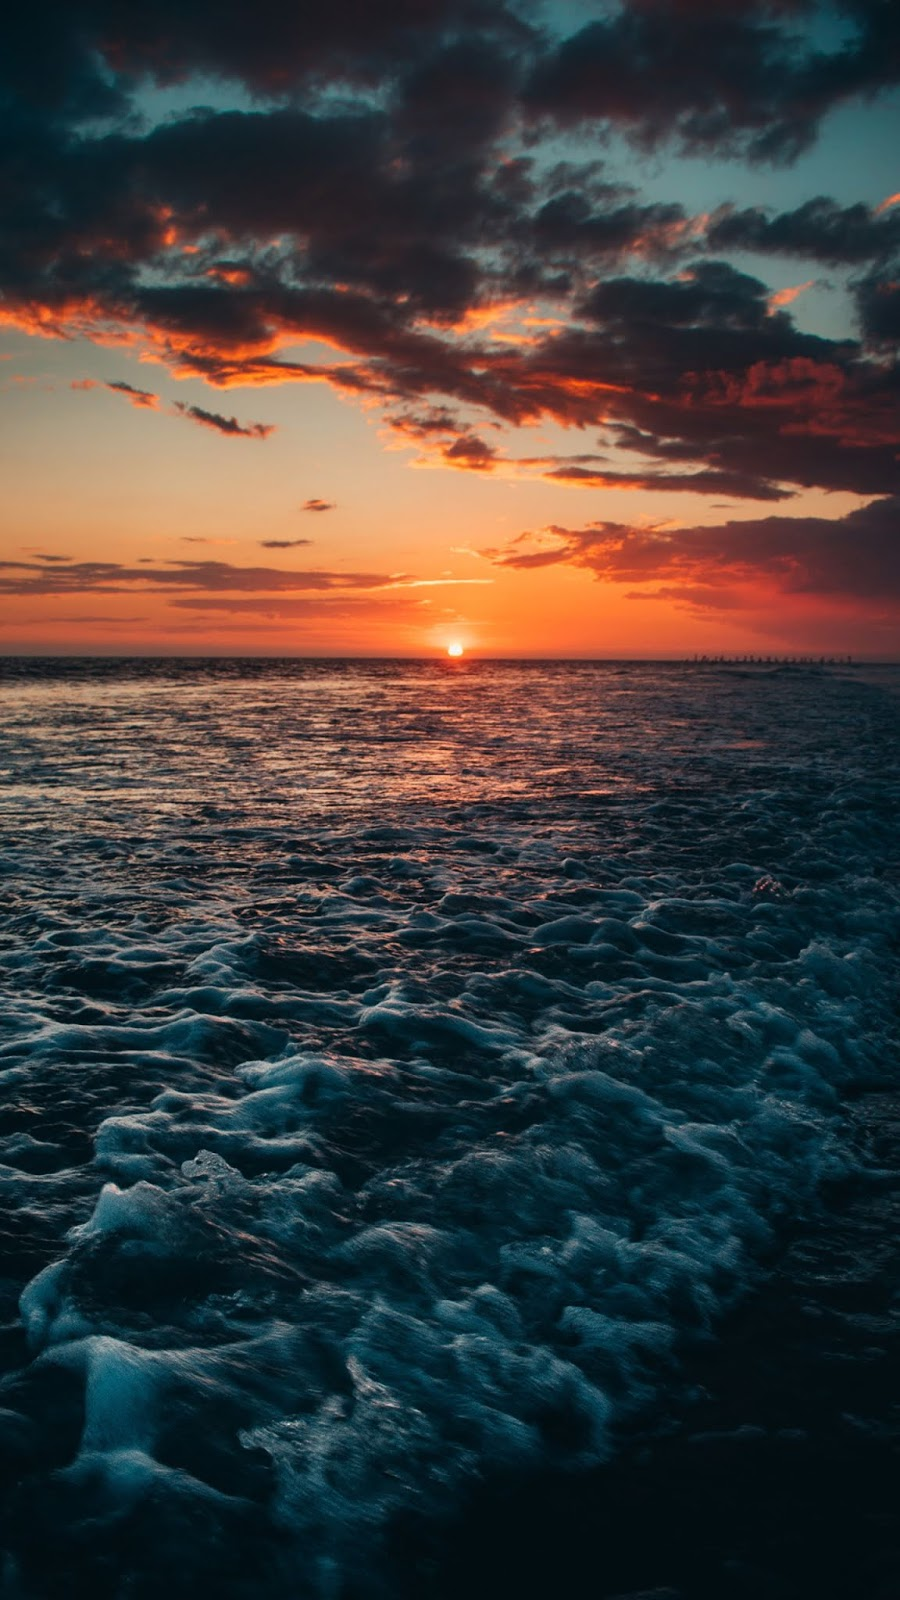 Sunset on the beach android wallpaper